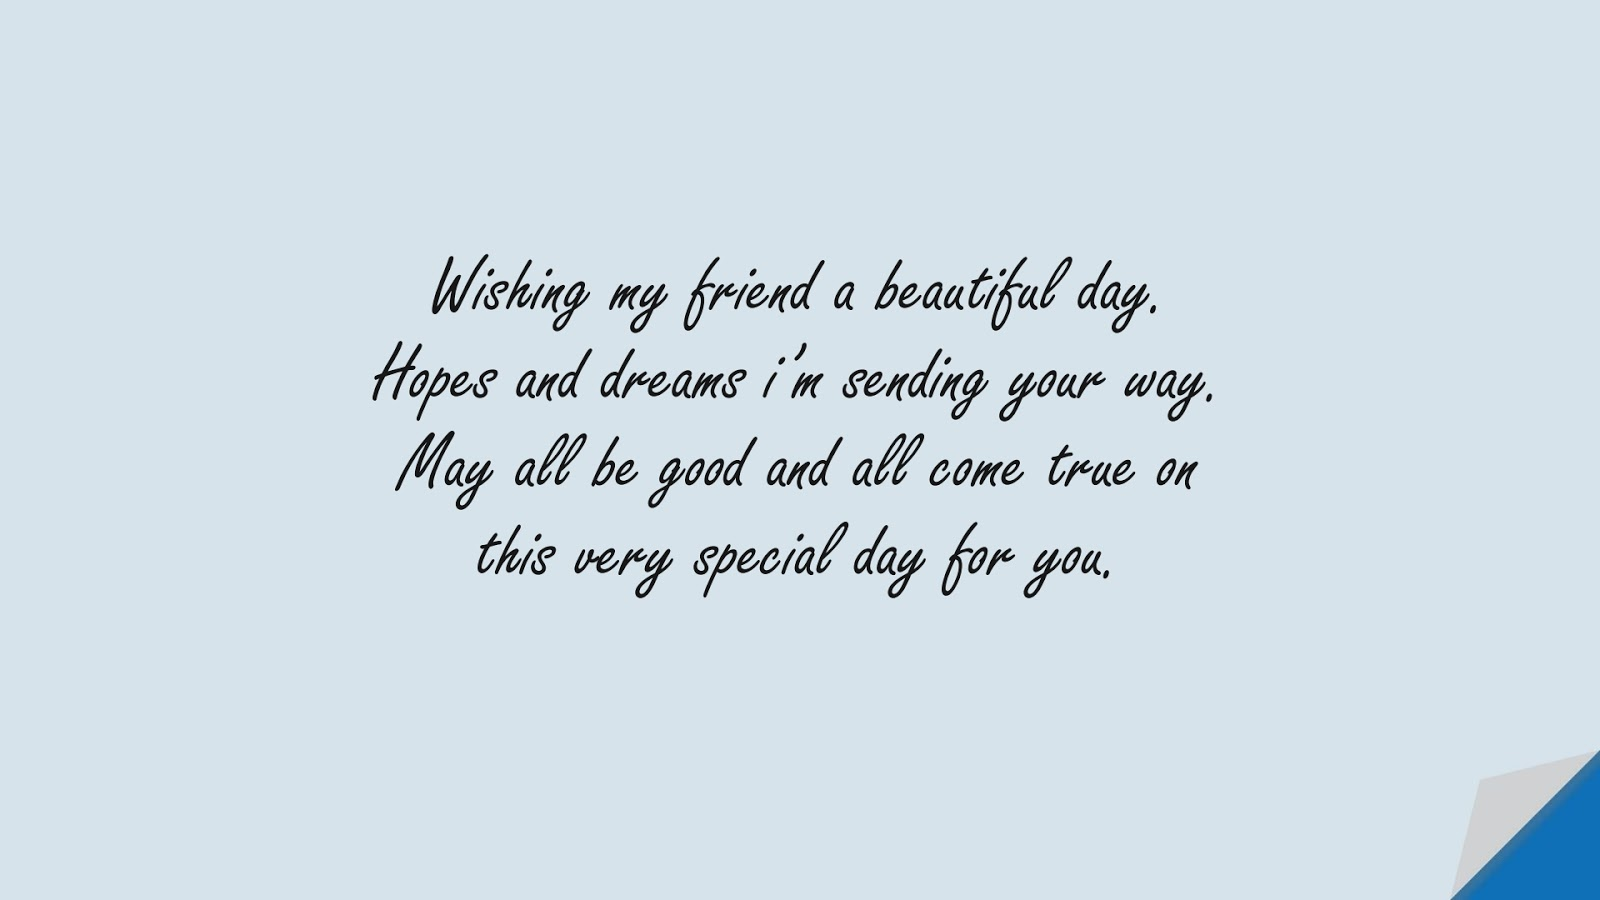 Wishing my friend a beautiful day. Hopes and dreams i'm sending your way. May all be good and all come true on this very special day for you.FALSE